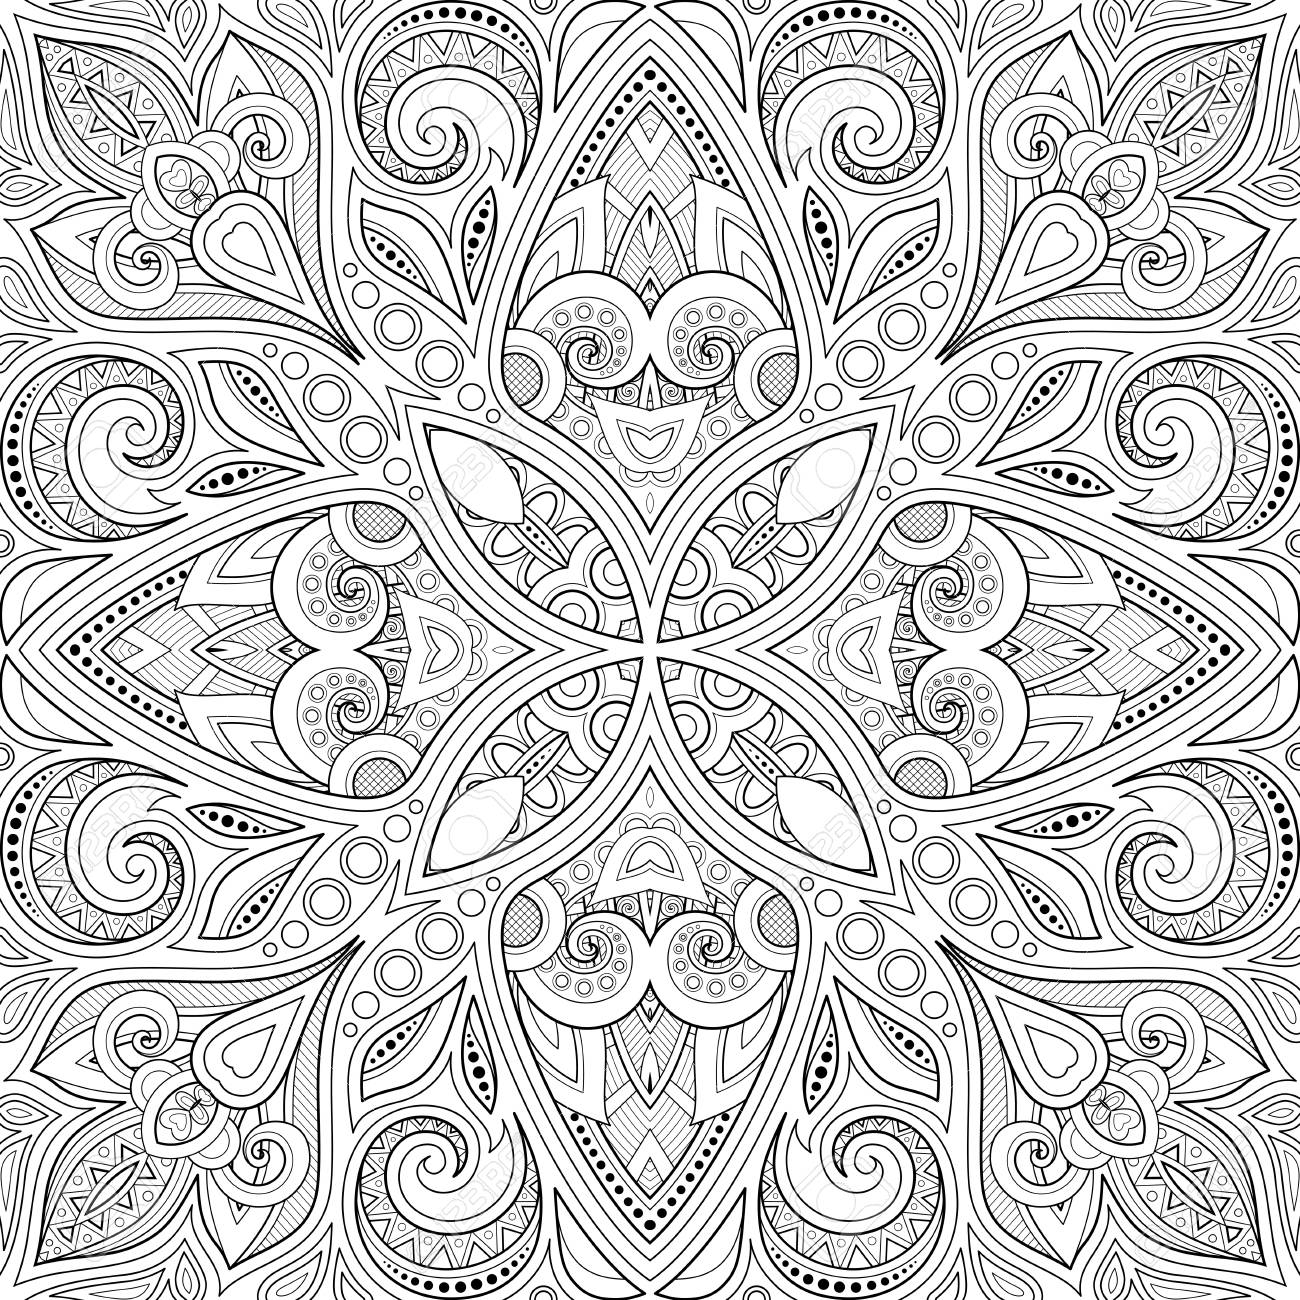 Monochrome Seamless Pattern with Mosaic Motif. Endless Floral Texture in Paisley Indian Style. Tile Ethnic Background. Coloring Book Page. Vector Contour Illustration. Abstract Mandala Art - 124784012